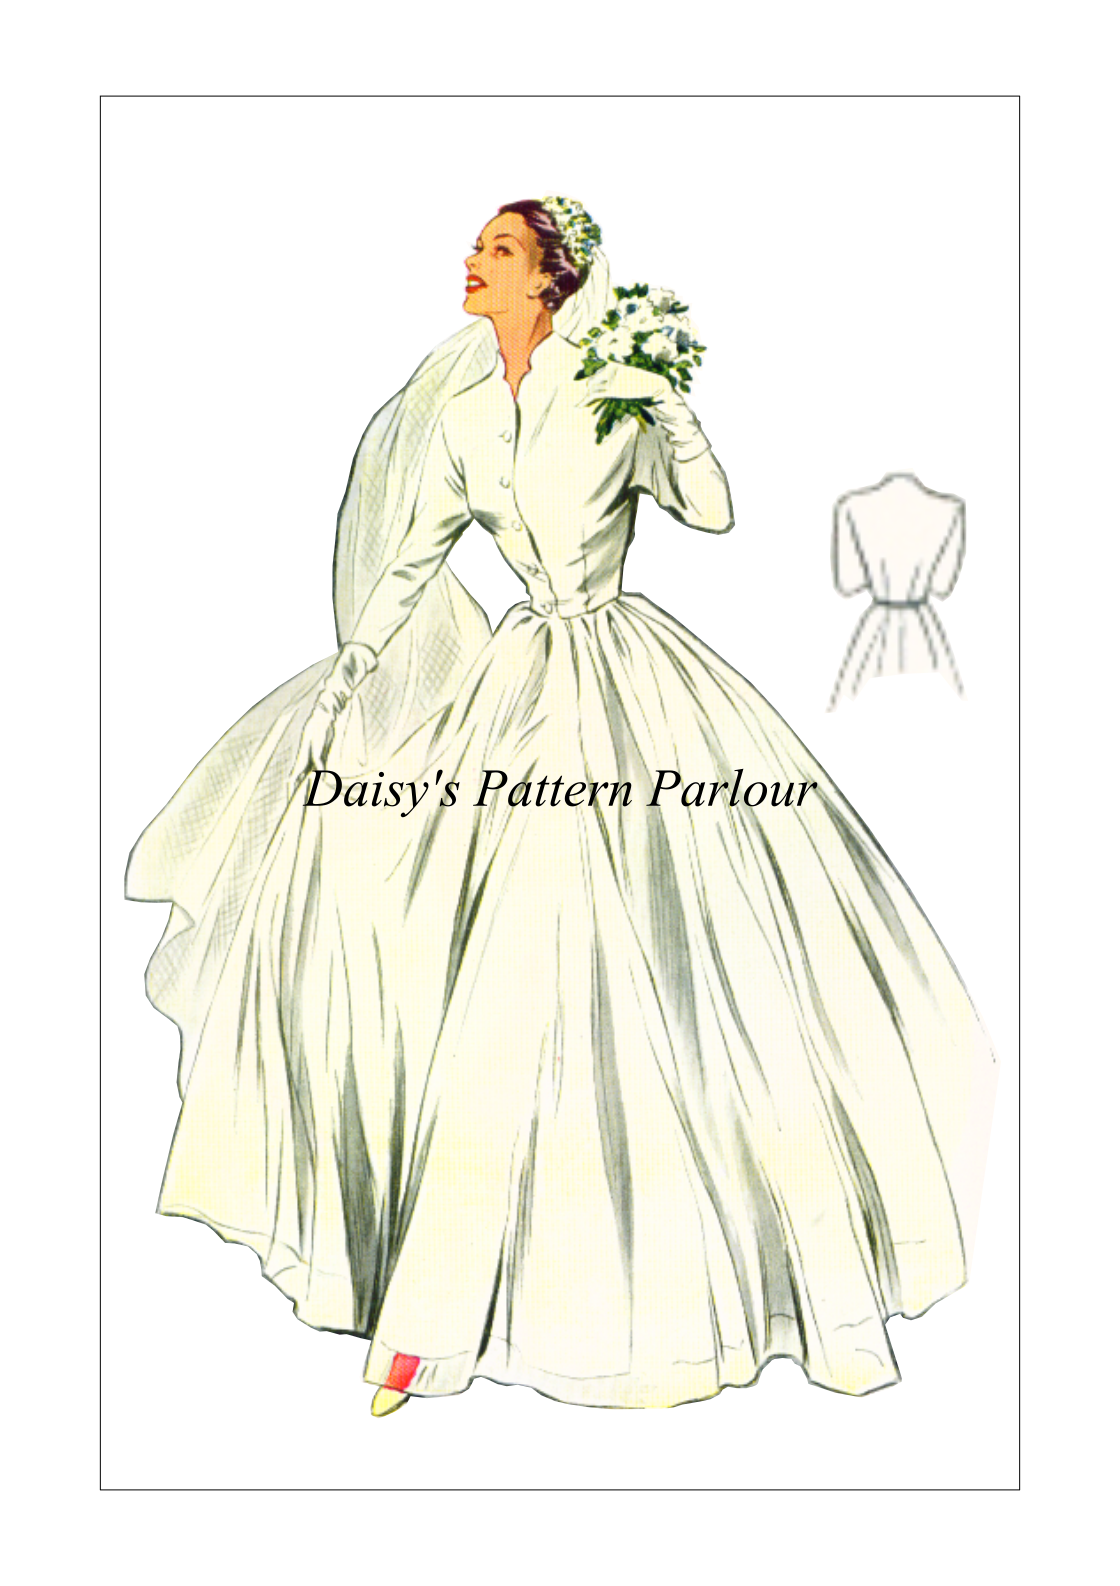 Patterns for wedding dresses   Vintage Sewing Pattern Wedding Dress Gown Evening Prom Daisys